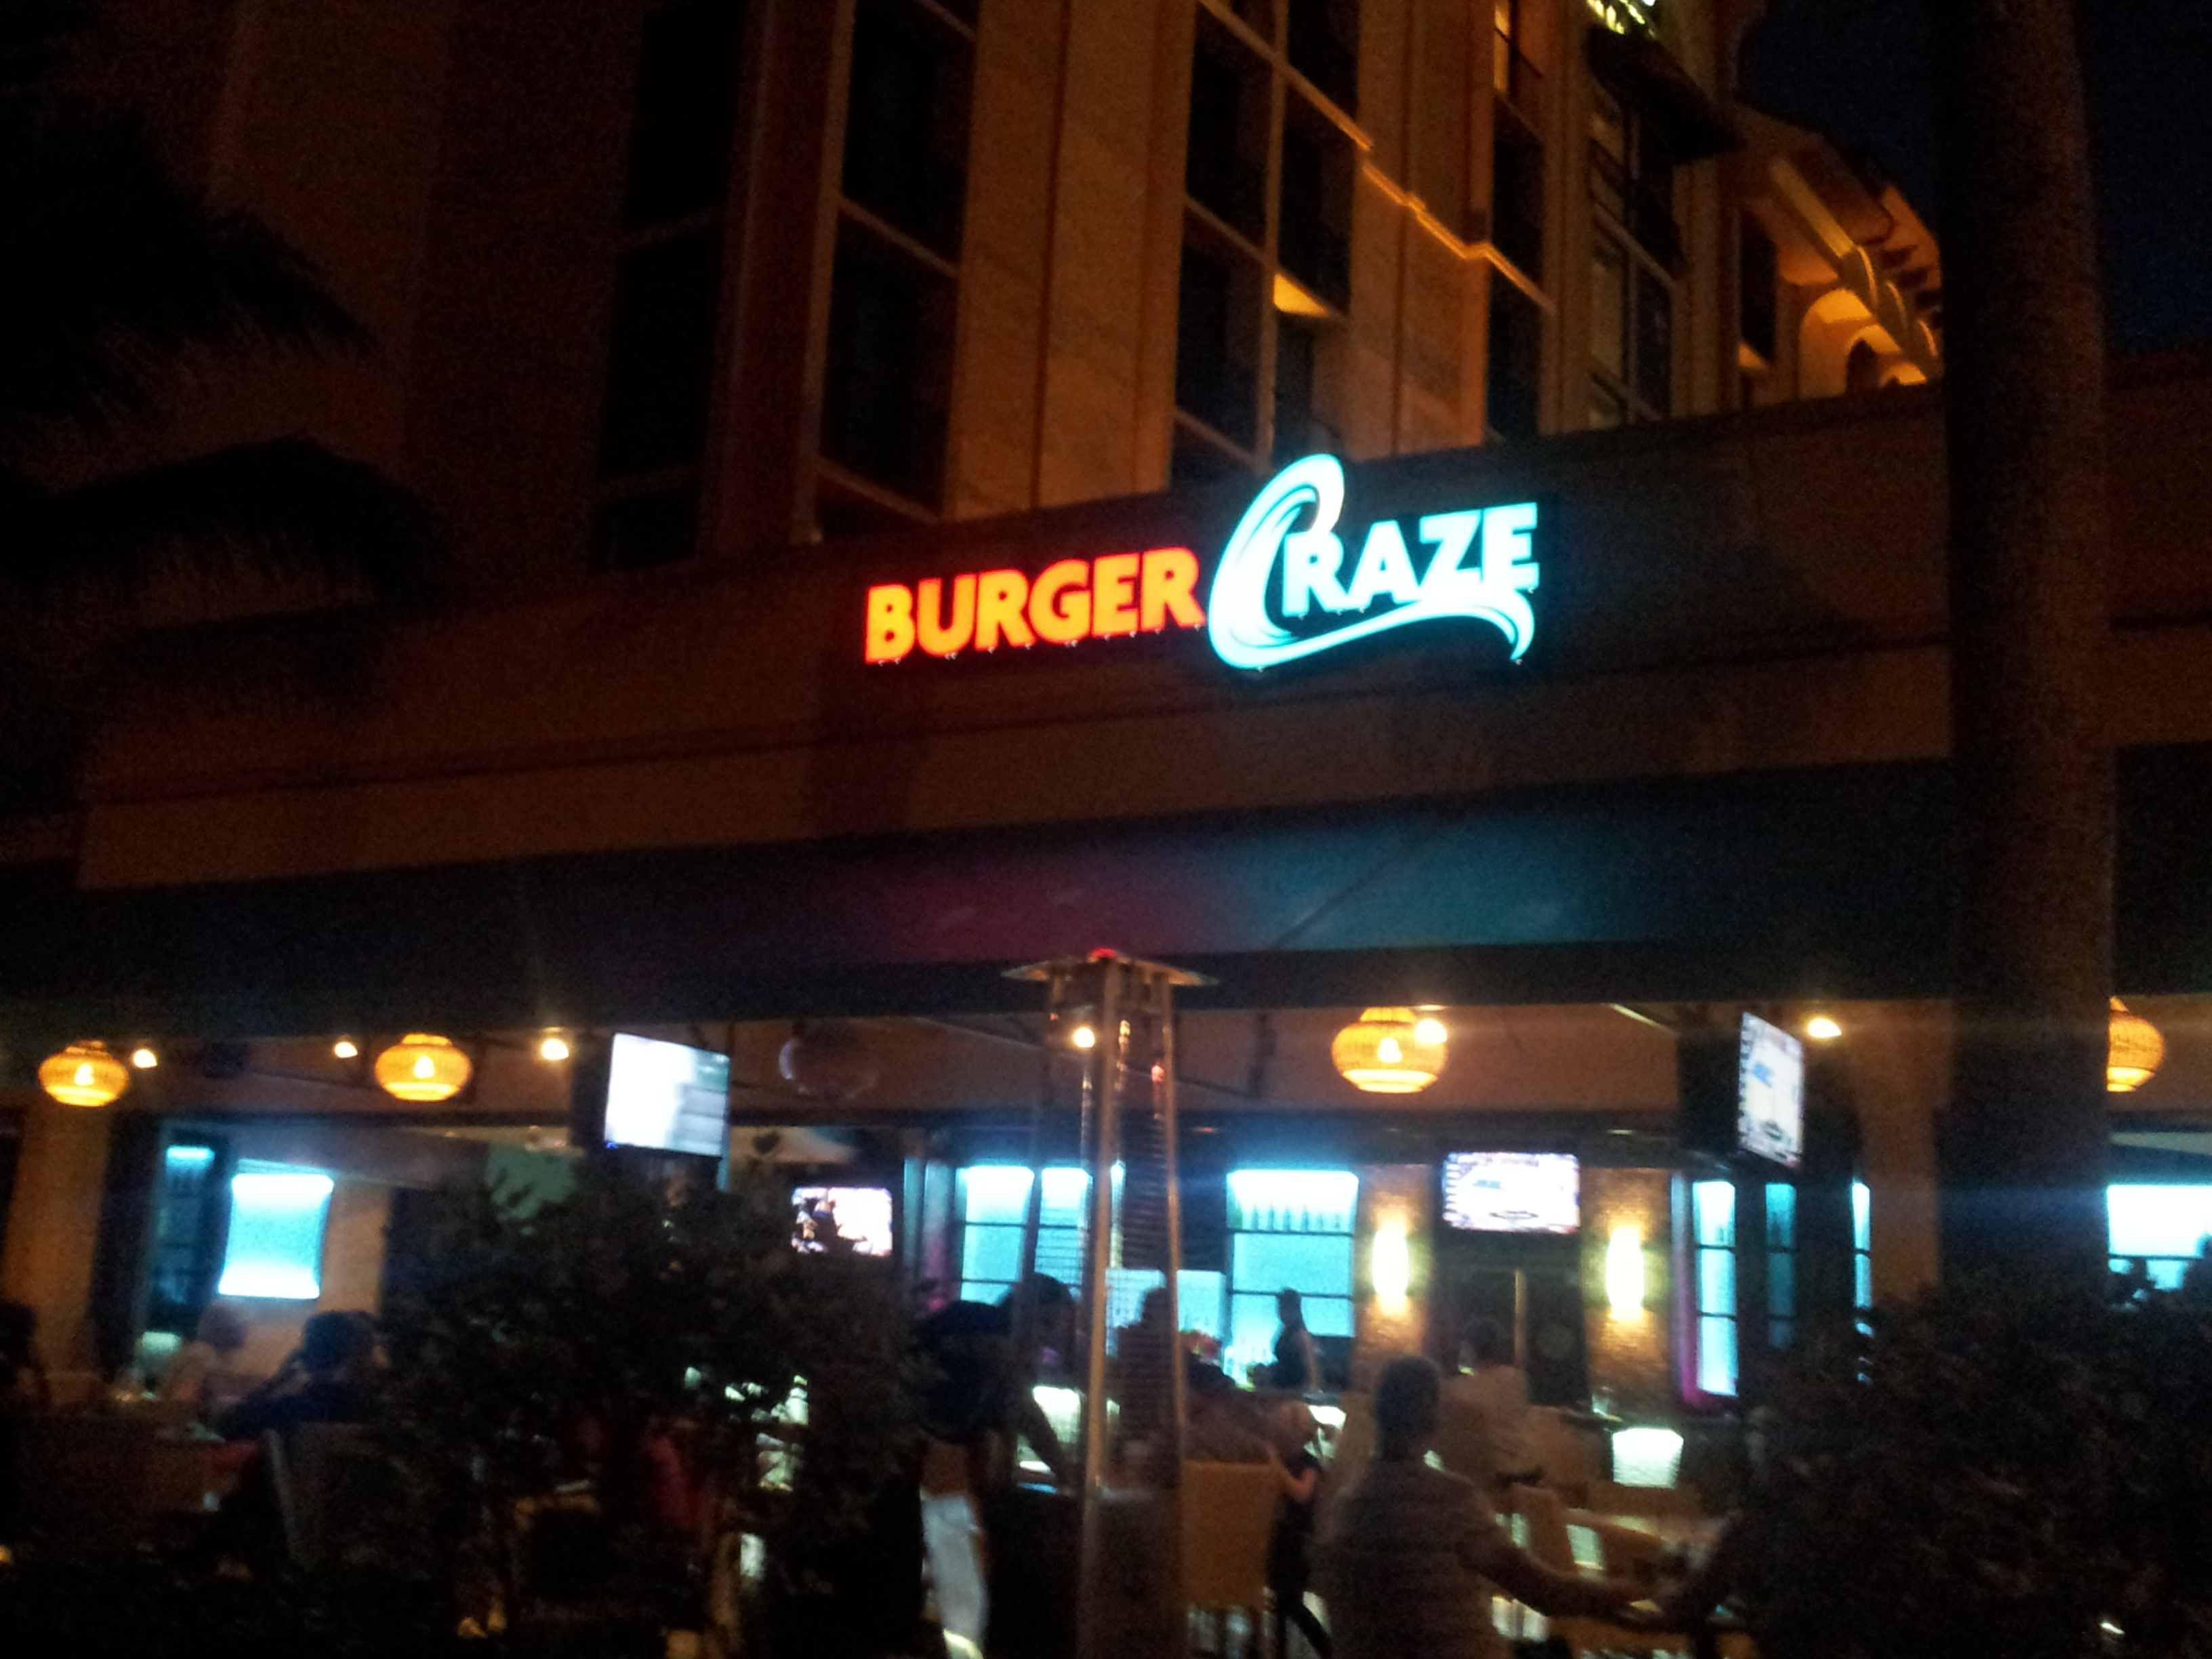 Burger Craze At The Wyndham Deerfield Beach Serves Up Delicious Flavor  Combinations With The Finest Ingredients, Along With A Healthy Serving Of  Beachside ...